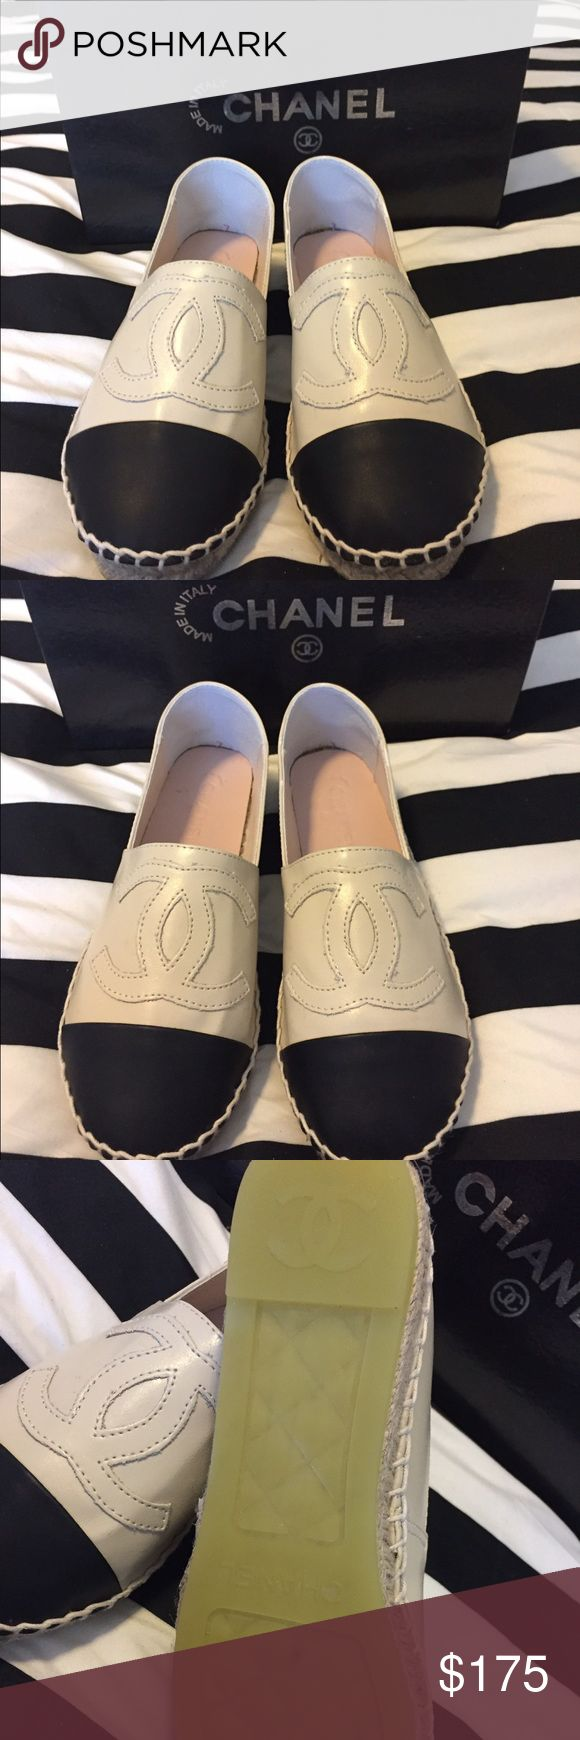 New Beige Espadrilles. Size 6 Size 6 Beige Espadrilles. Price reflects thx. Box included. Shoe says size 37 but fit like size 6. Real leather. Great deal 👍🏾 1:1 Black leather size 6 also available! See closet for more. Fit normal to narrow size foot. CHANEL Shoes Espadrilles